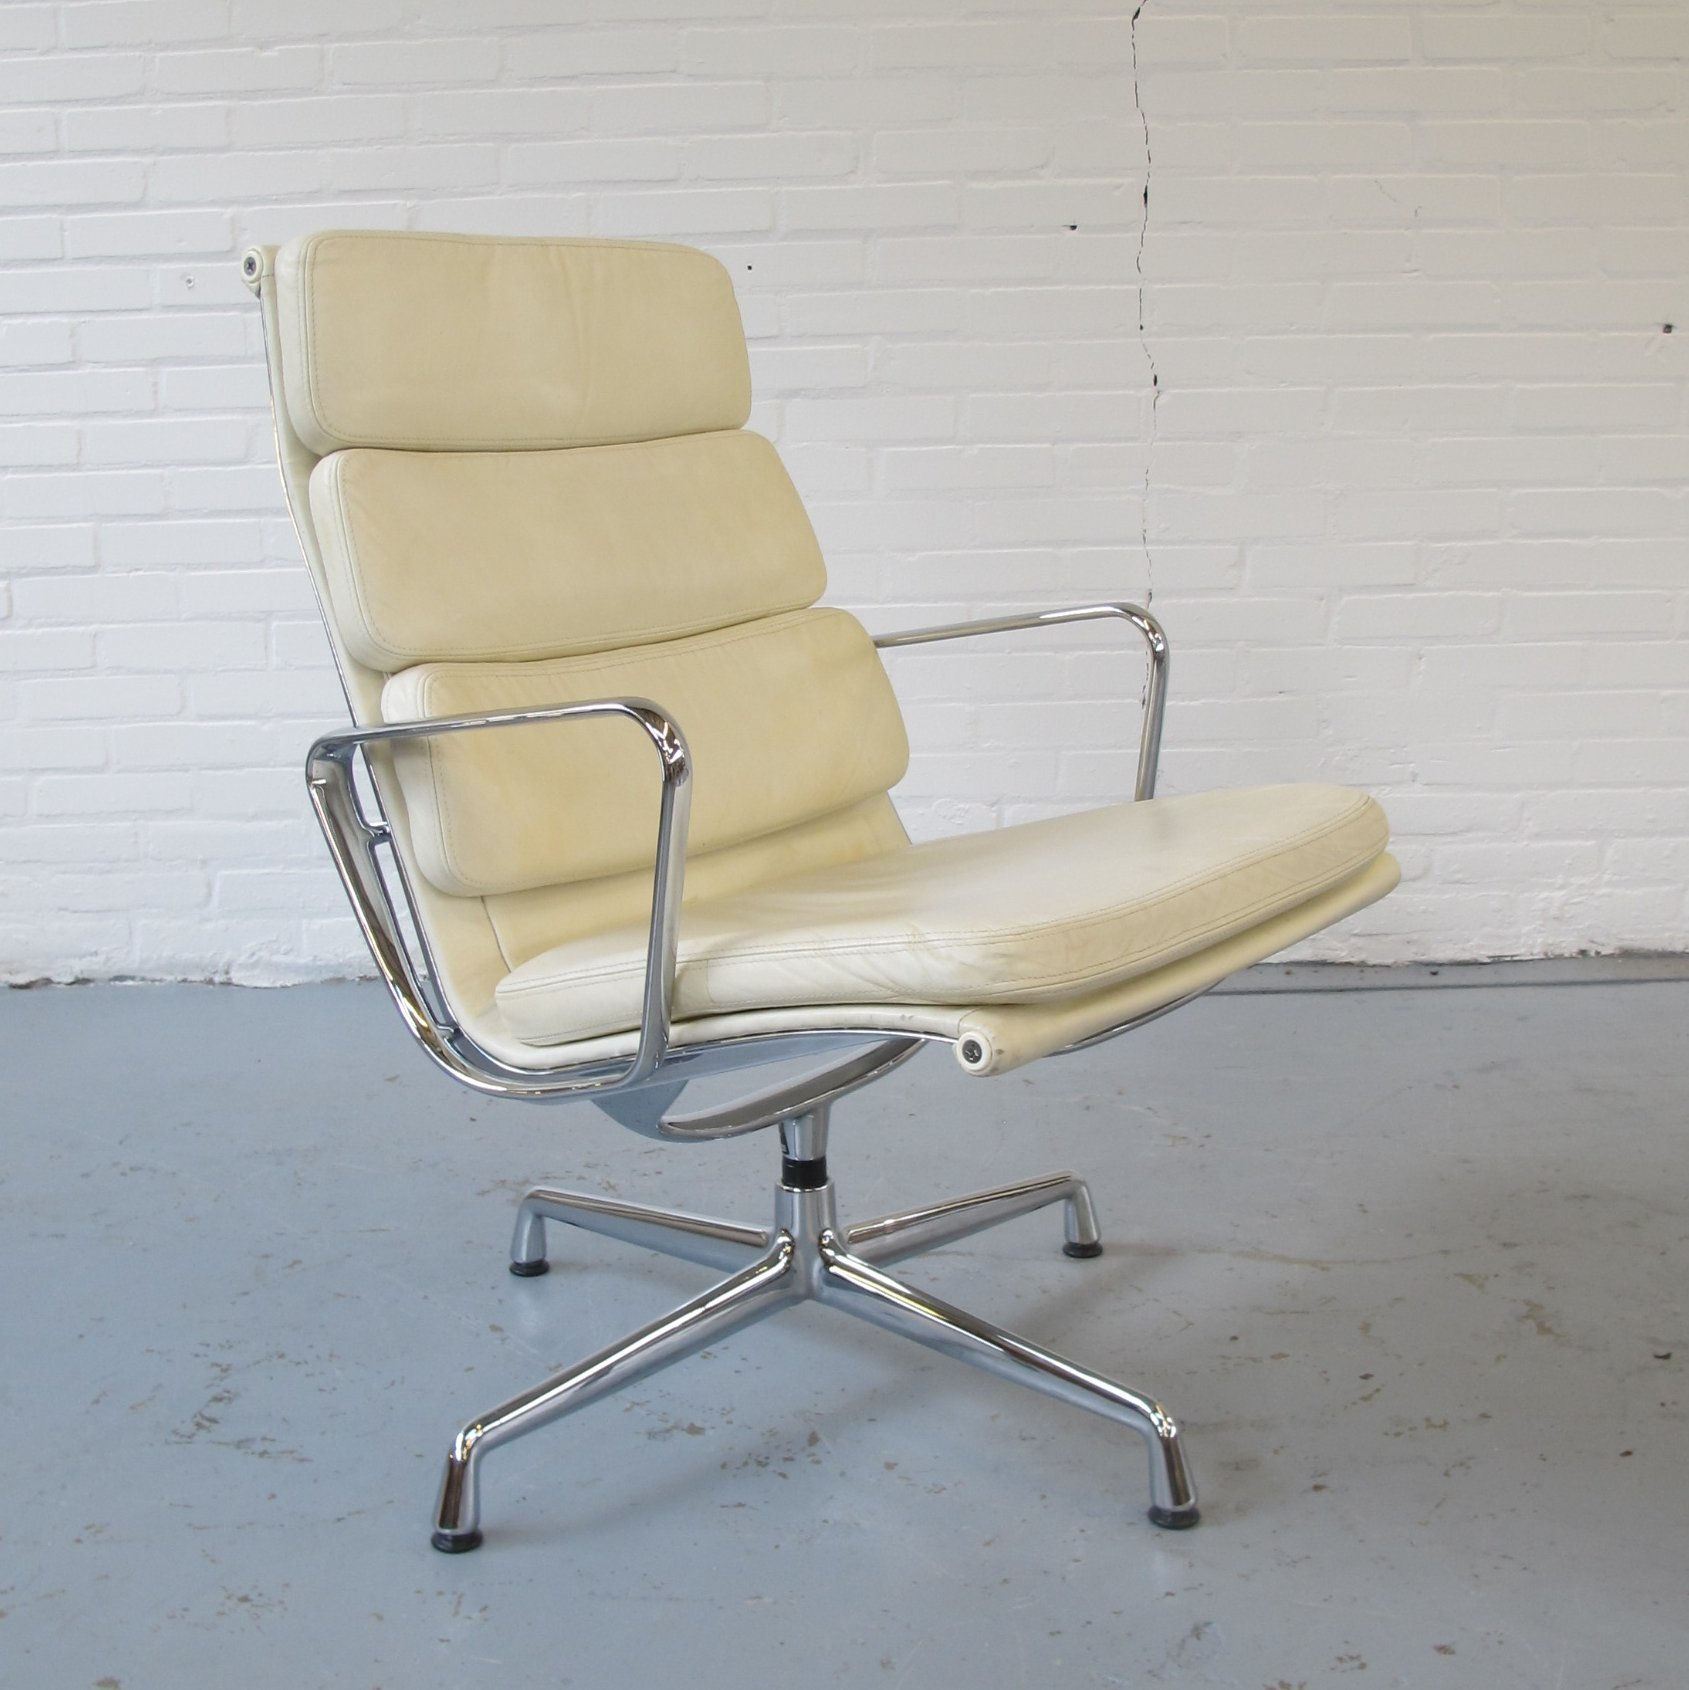 EA 216 soft pad lounge chair by Charles & Ray Eames for Vitra 1990s